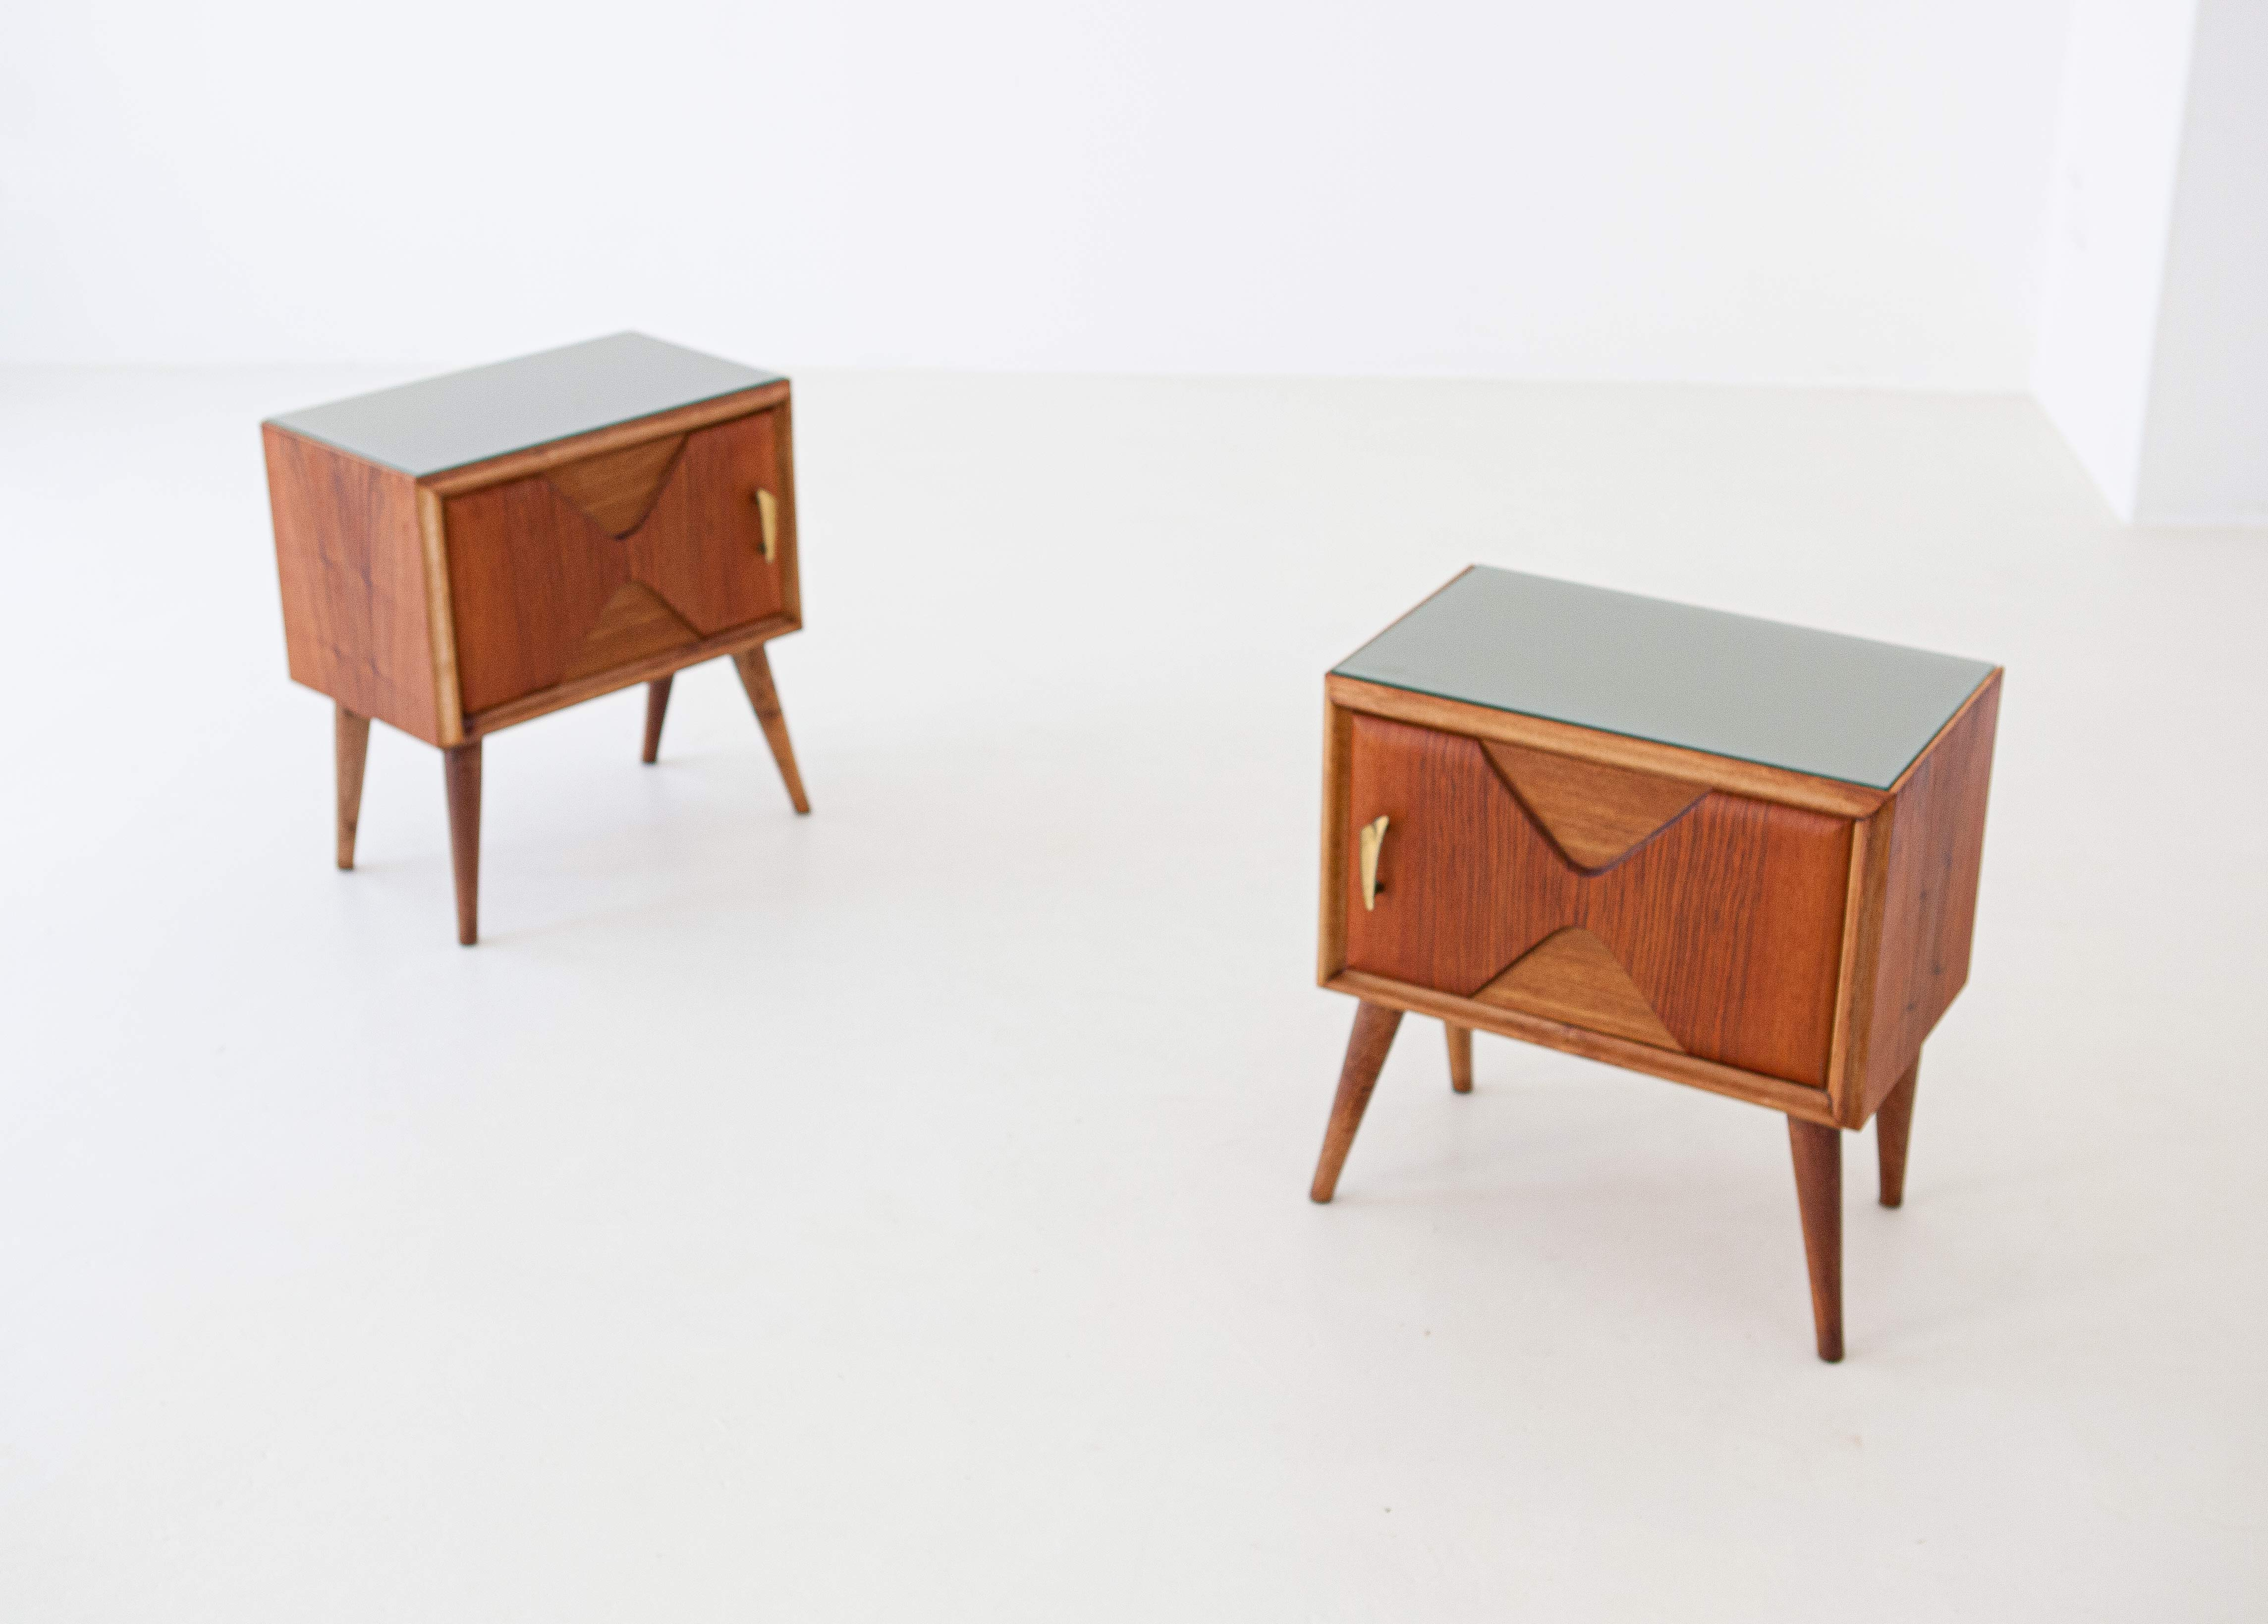 1950s-italian-exotic-wood-brass-glass-bedside-tables-8-BT81